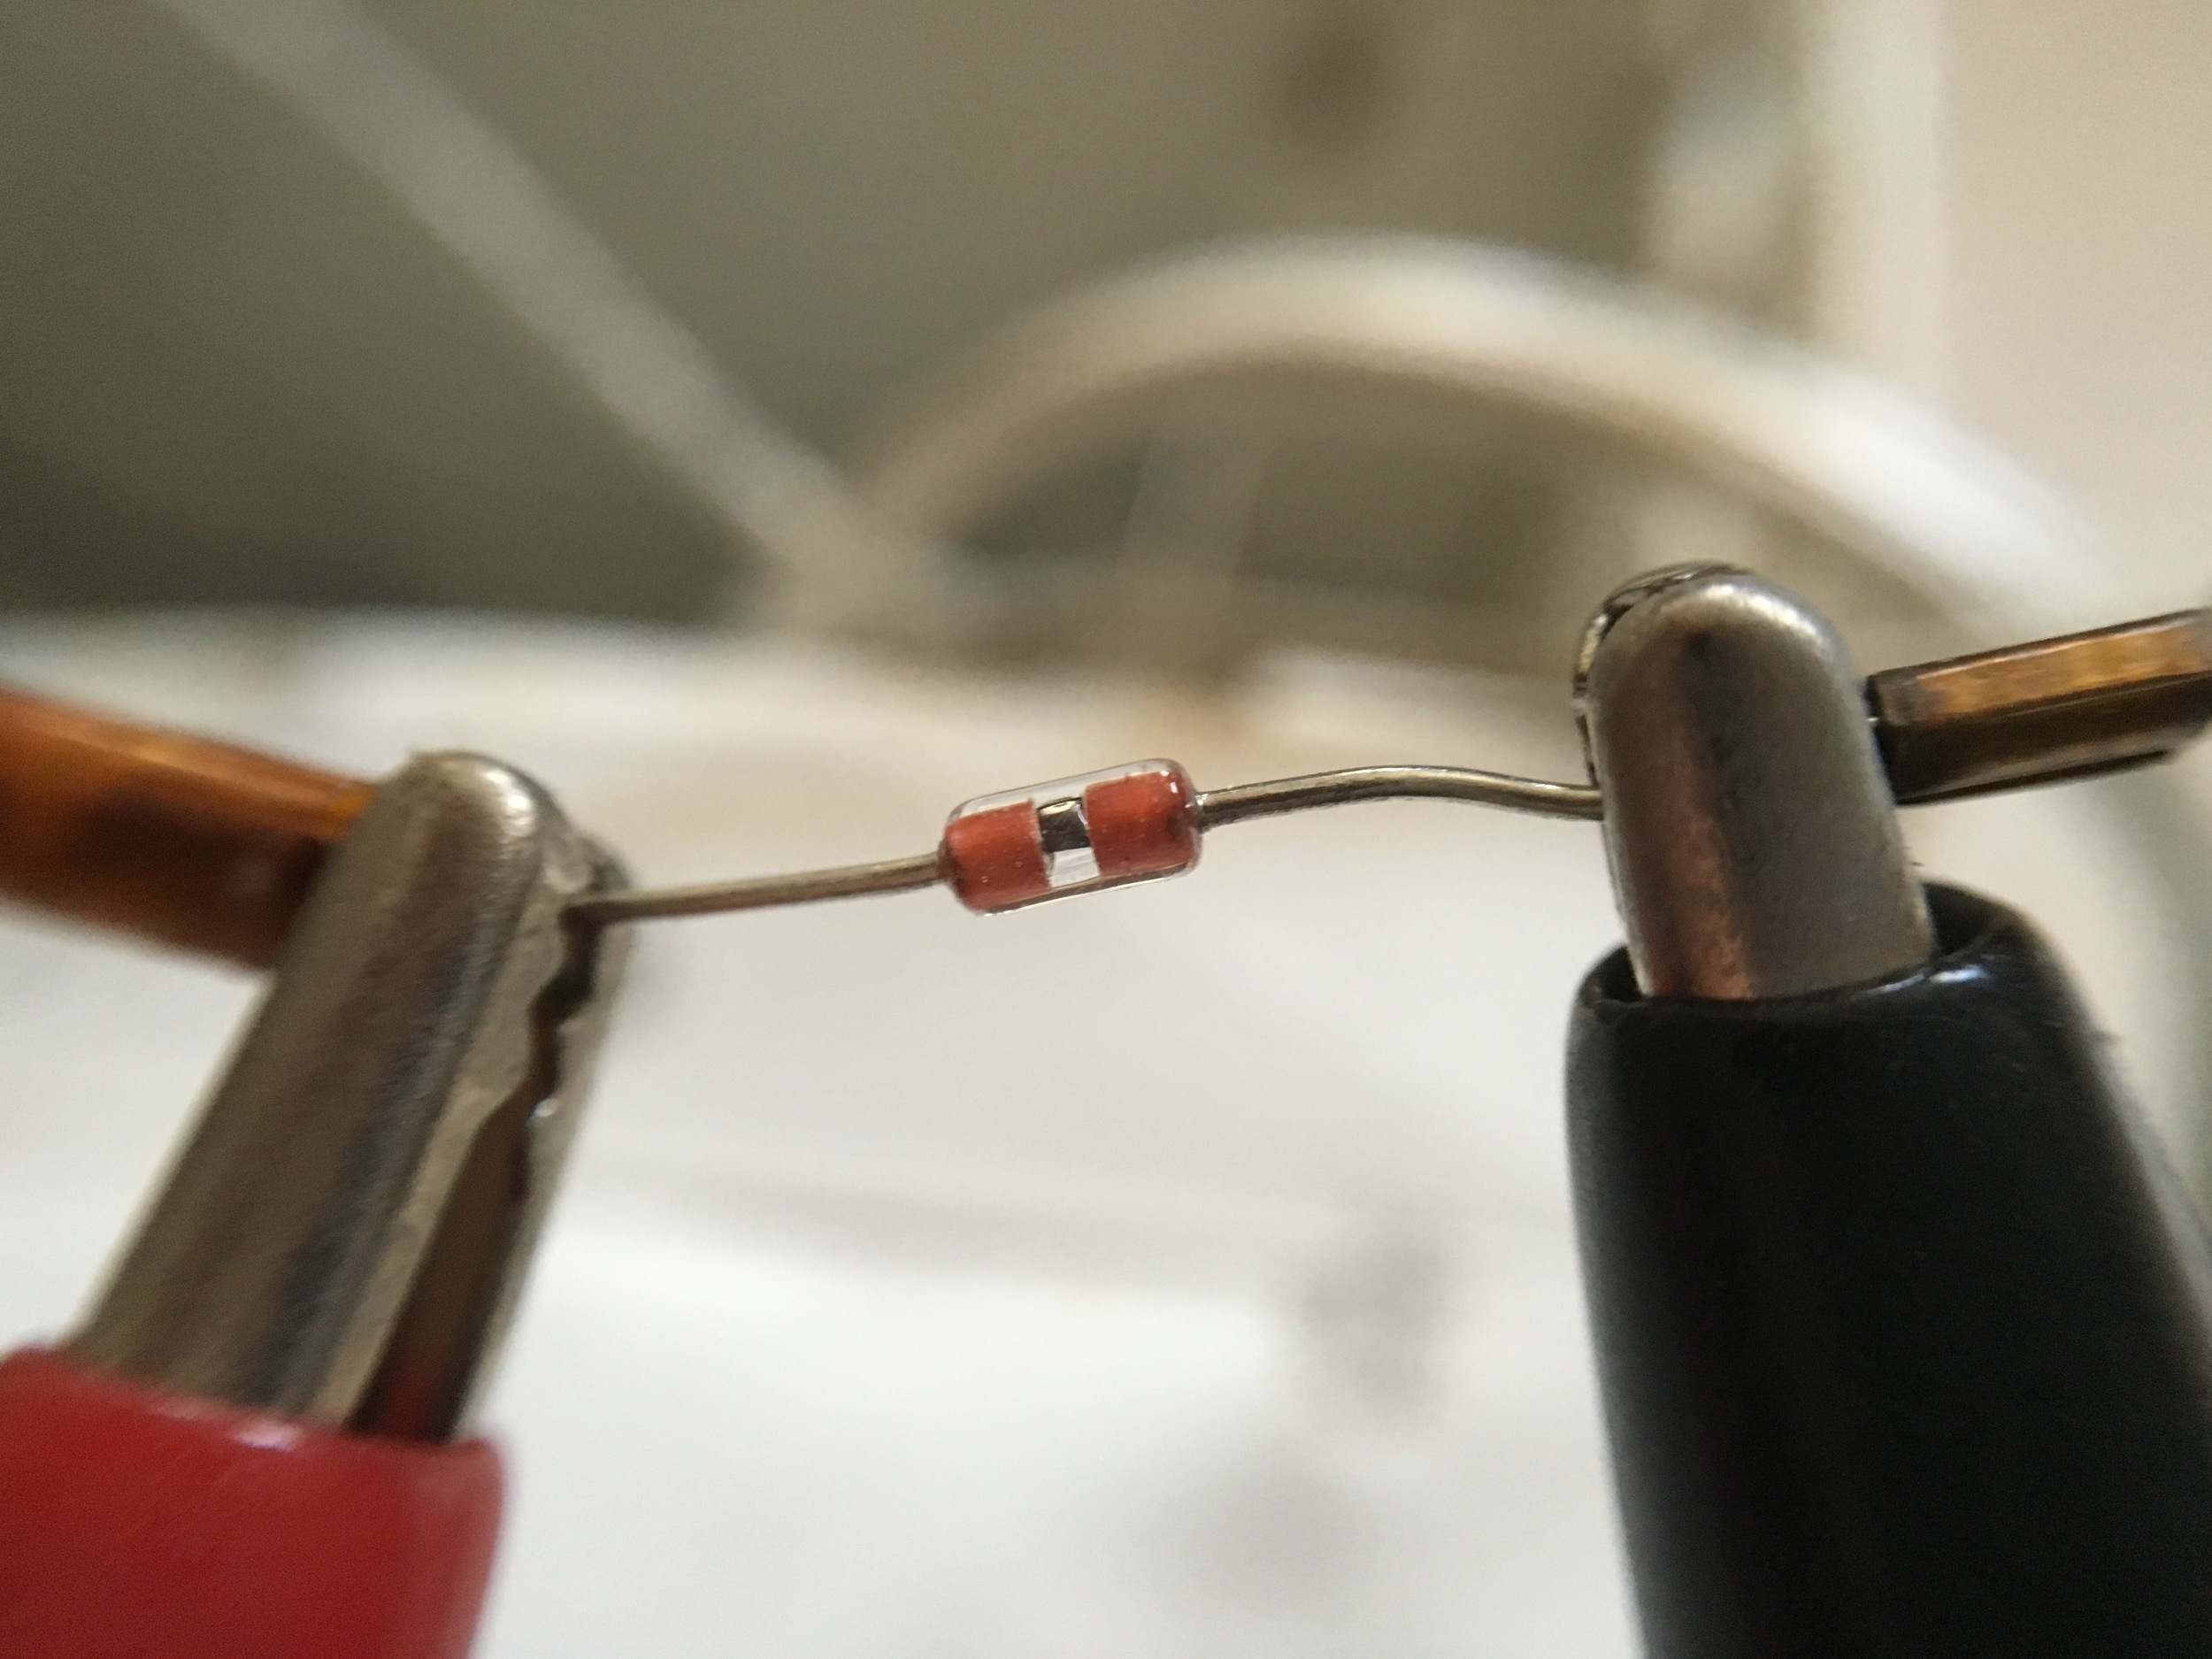 Thermistor, close-up